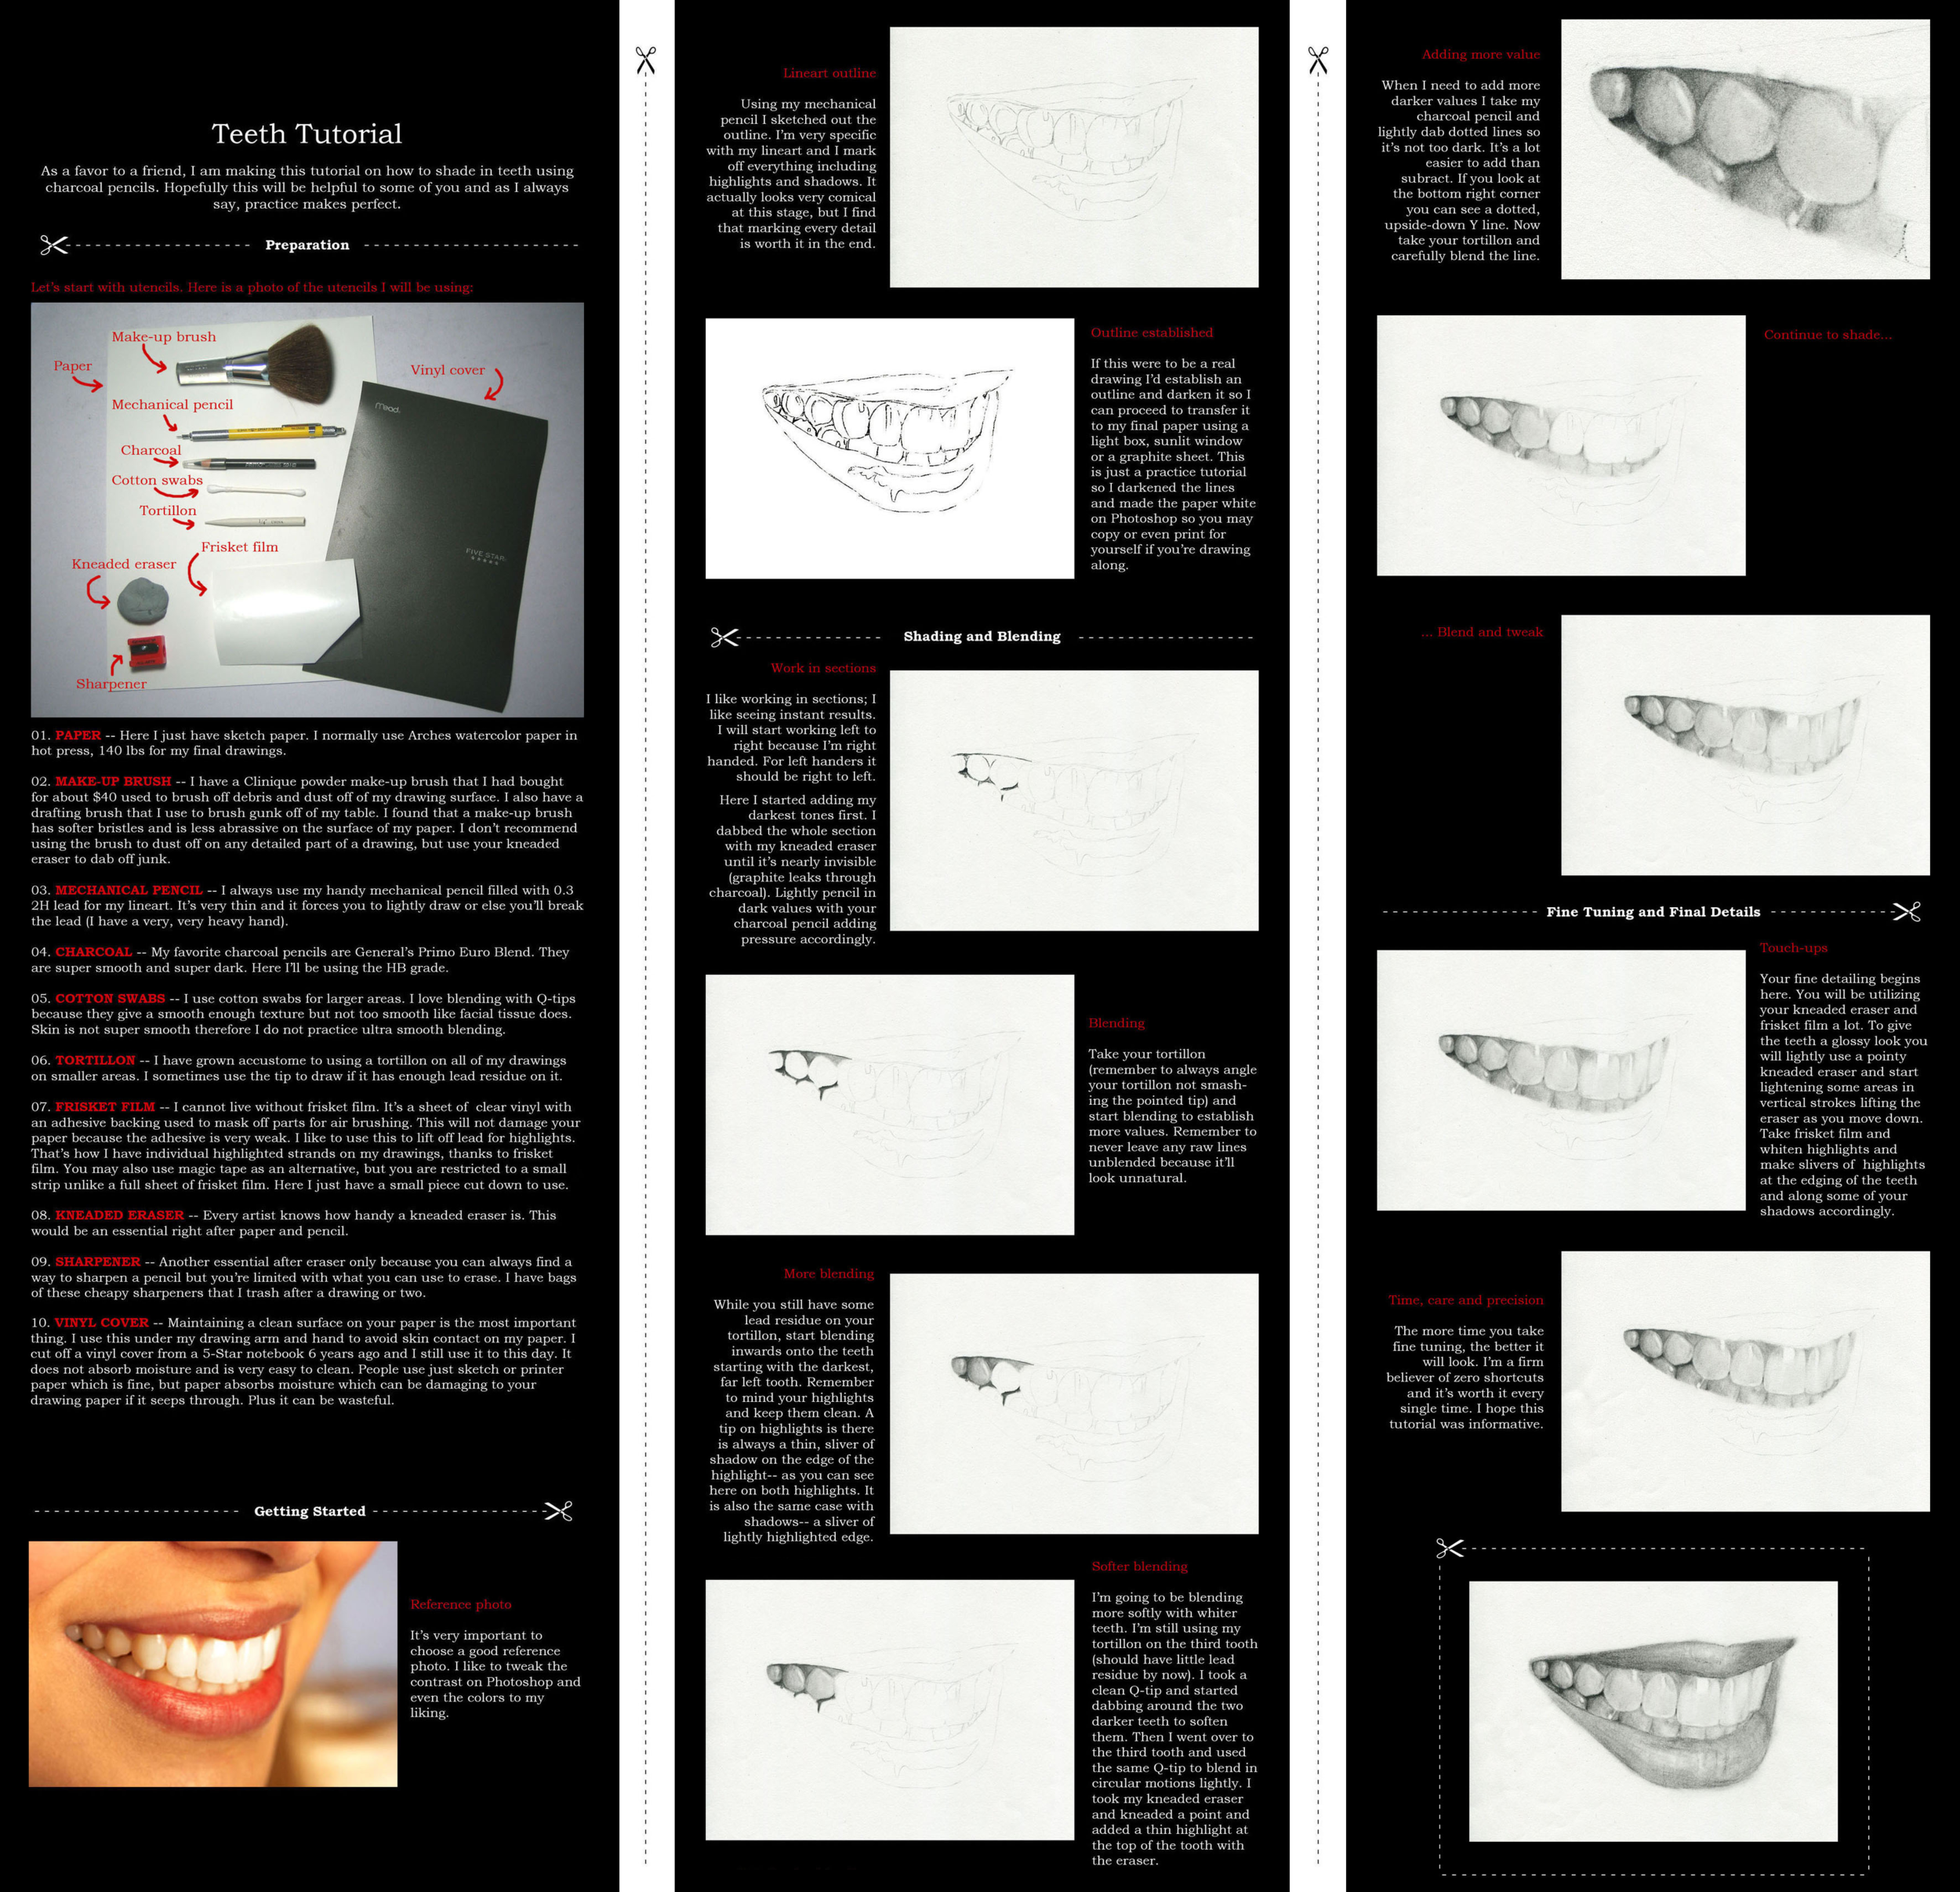 Teeth Tutorial